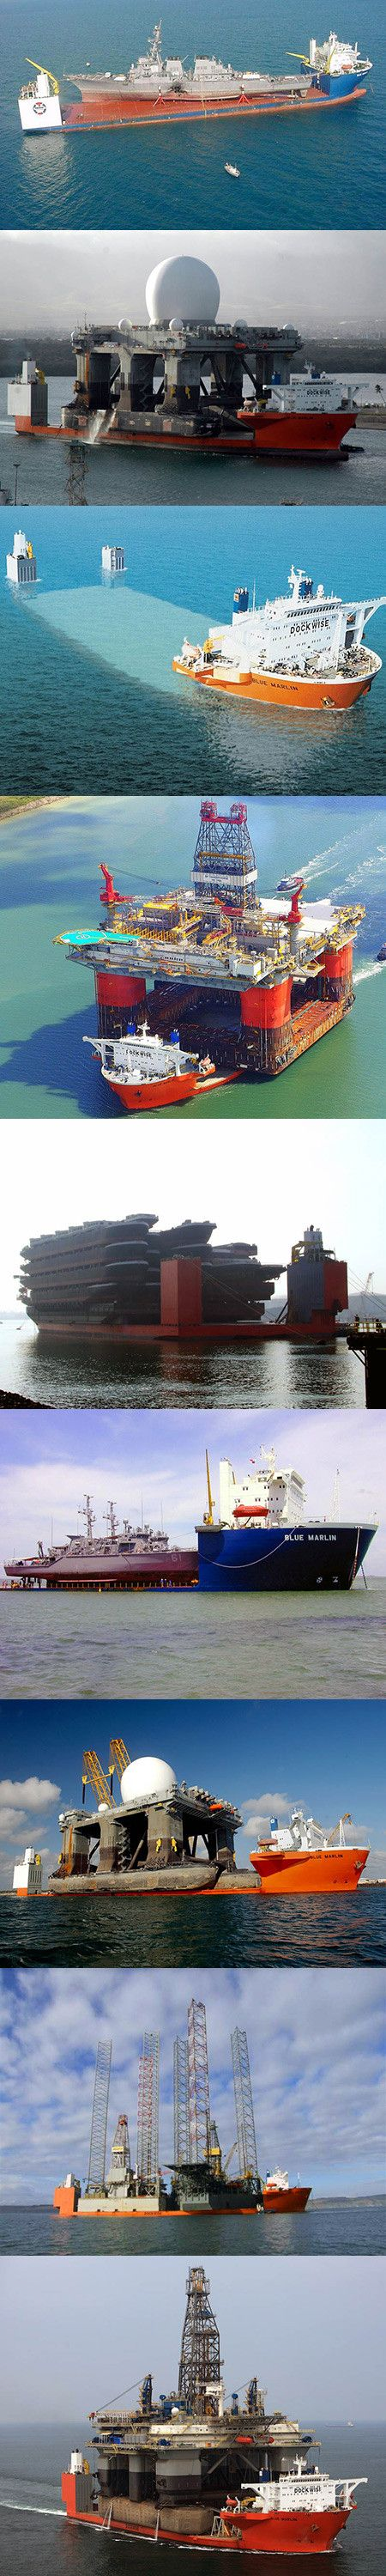 Amazing Look at Blue Marlin, a Giant Vessel Used to Transport Ships and Large Structures - TechEBlog